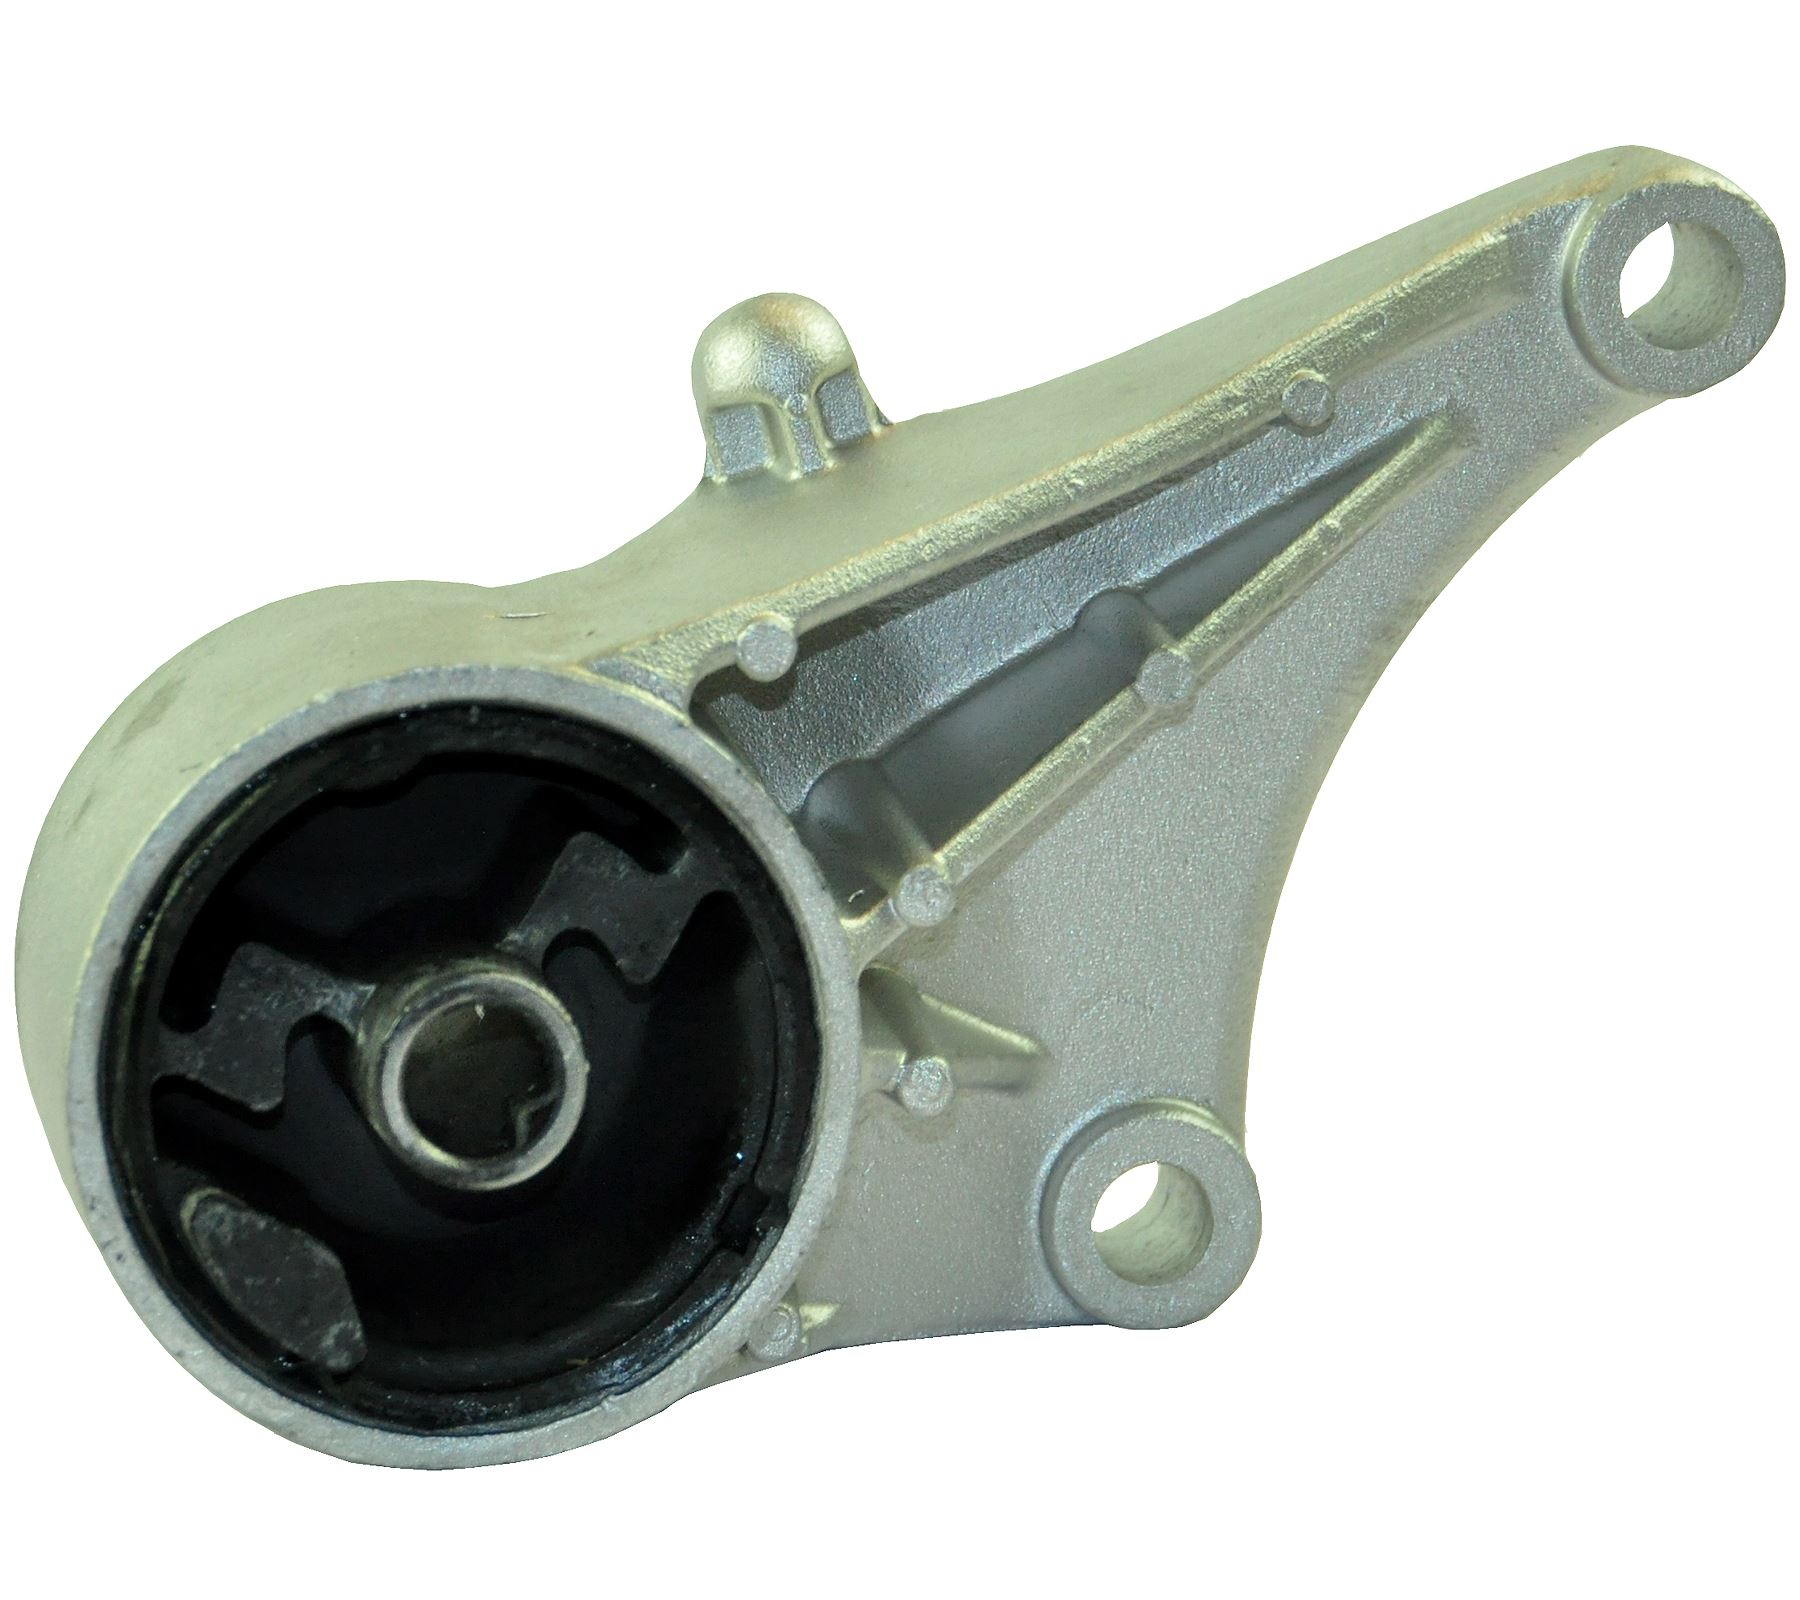 D2P FRONT ENGINE MOUNT FOR ASTRA G//MK4 90576047 ZAFIRA A